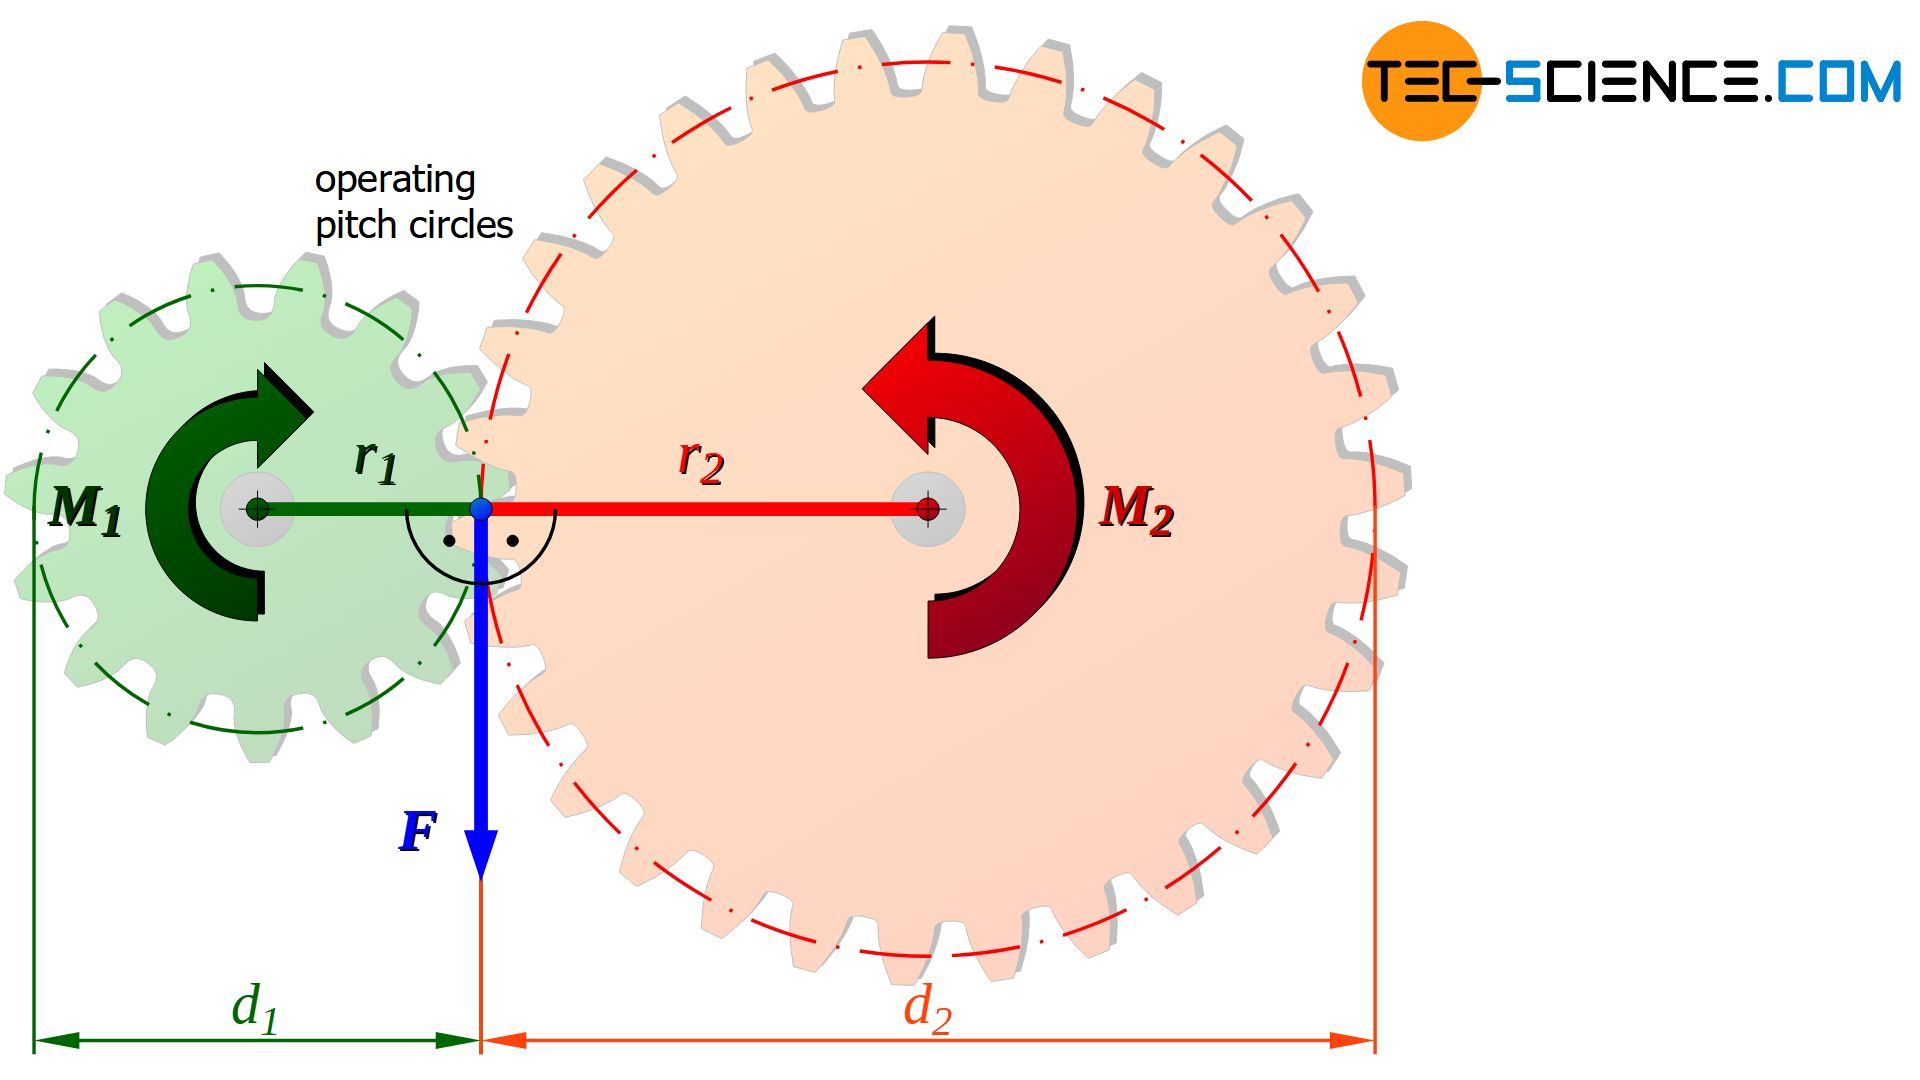 Torque conversion in the traction gear